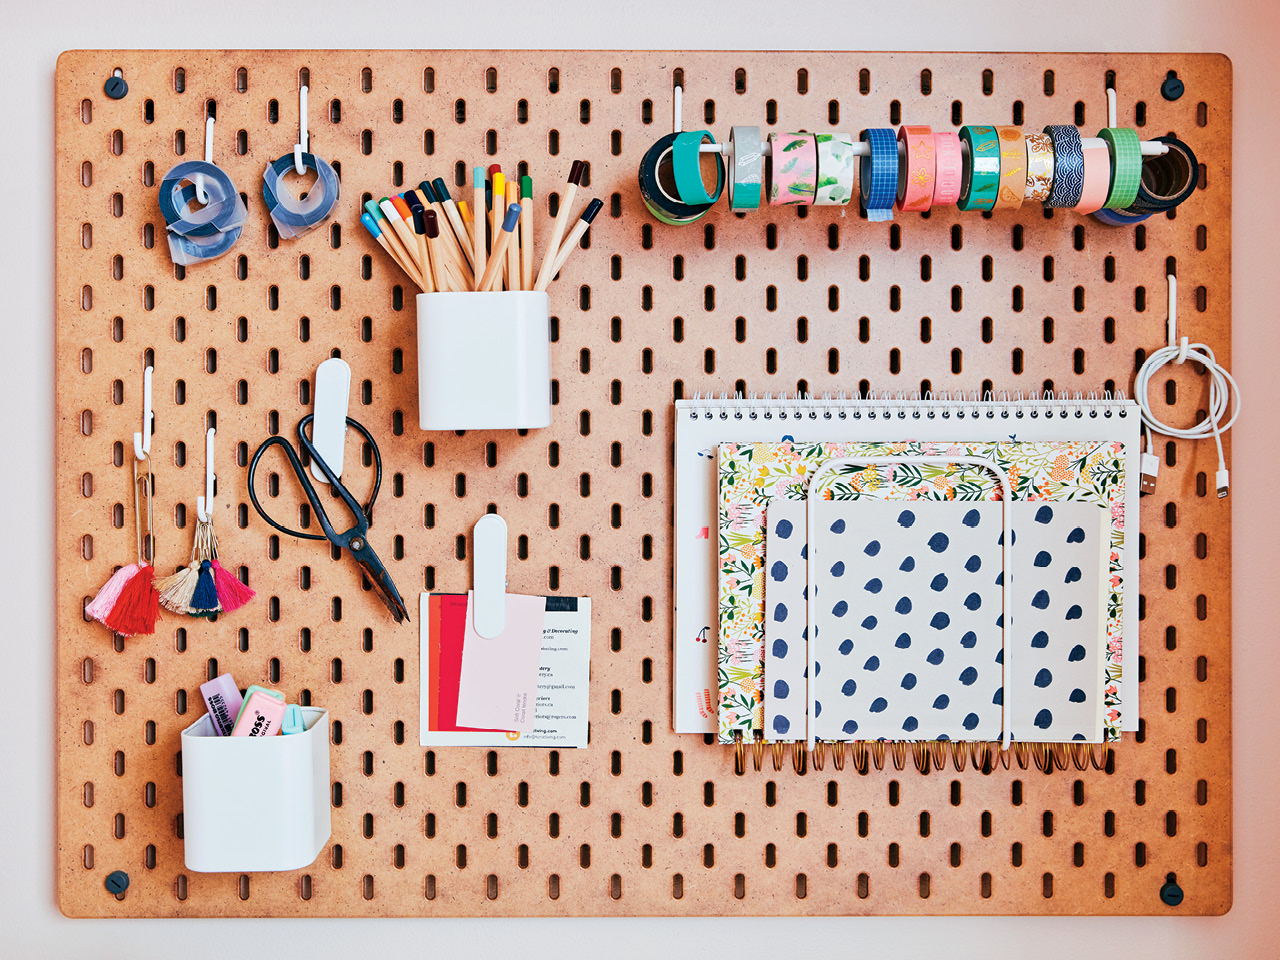 A brown pegboard hanging on a wall holds various stationary items such as scissors, pens, notebooks and tape.